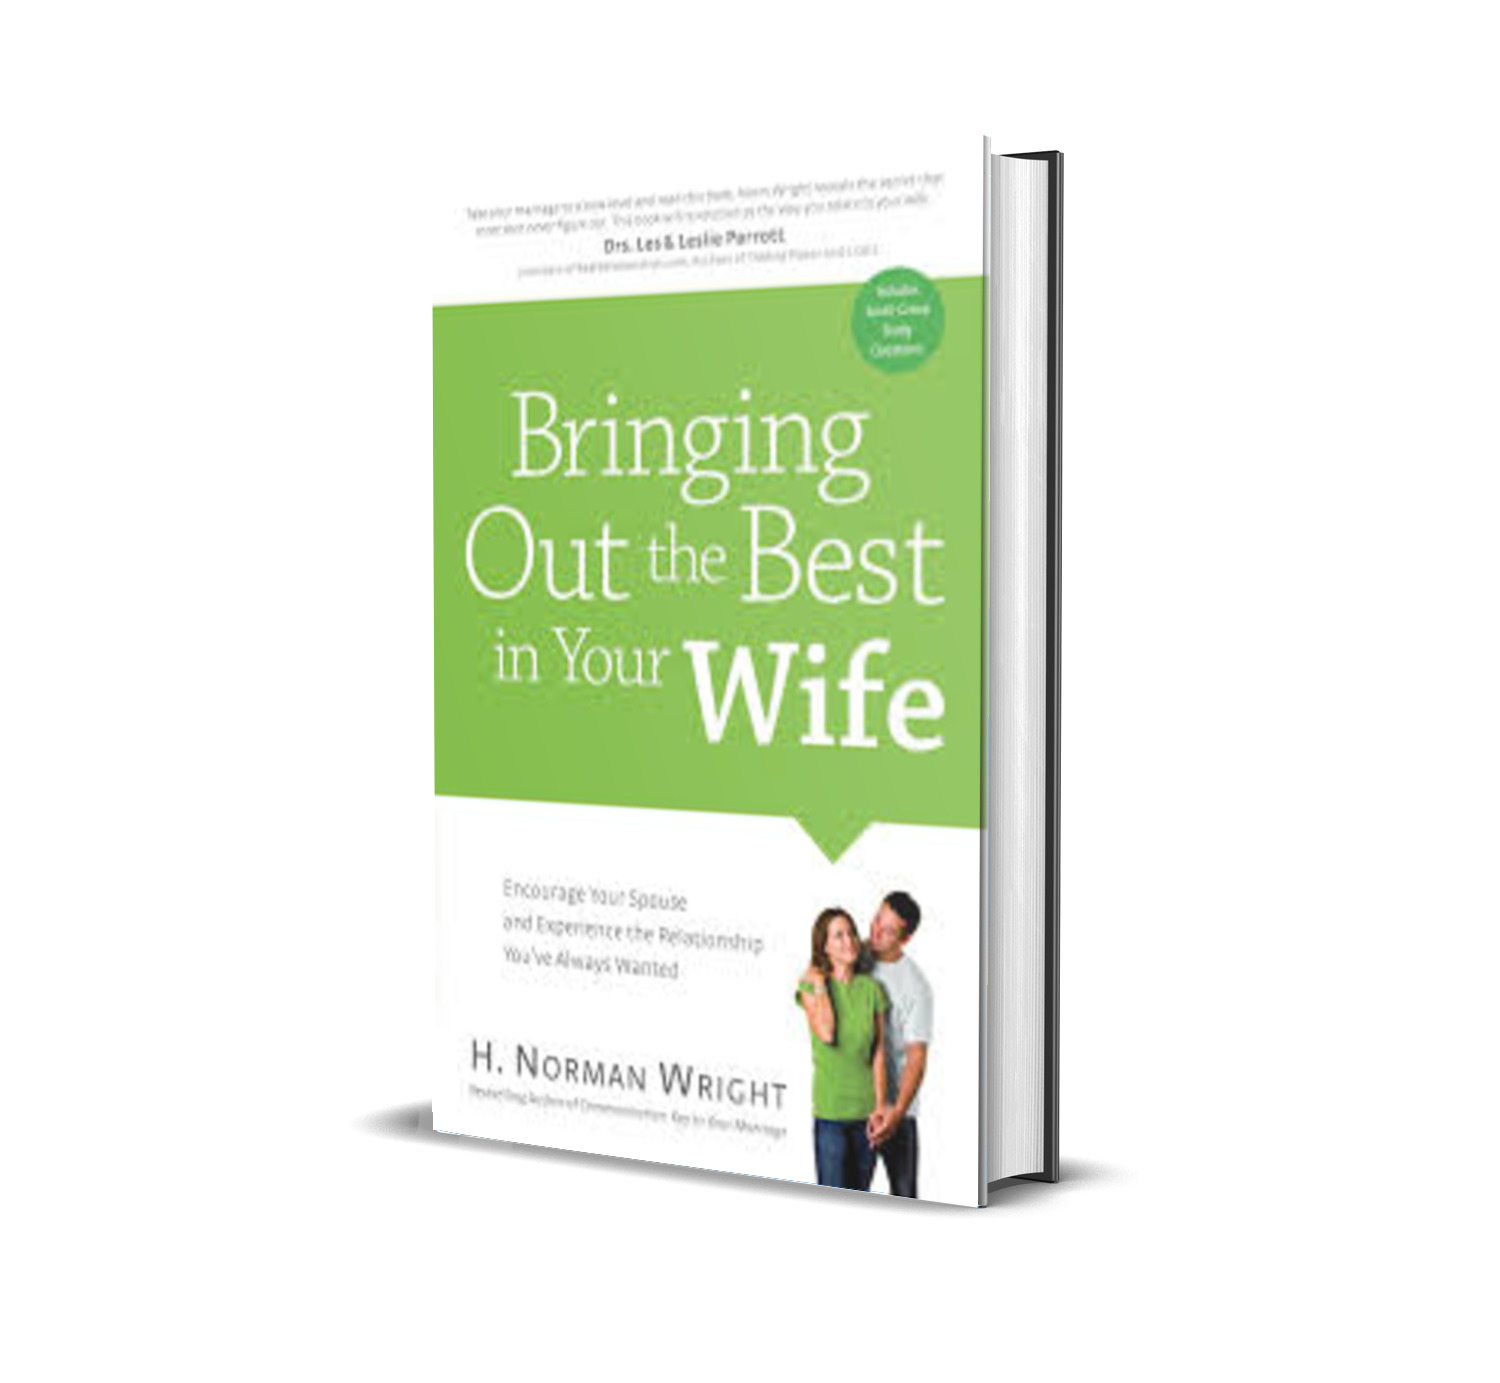 BRINGING OUT THE BEST IN YOUR WIFE - NORMAN WRIGHT